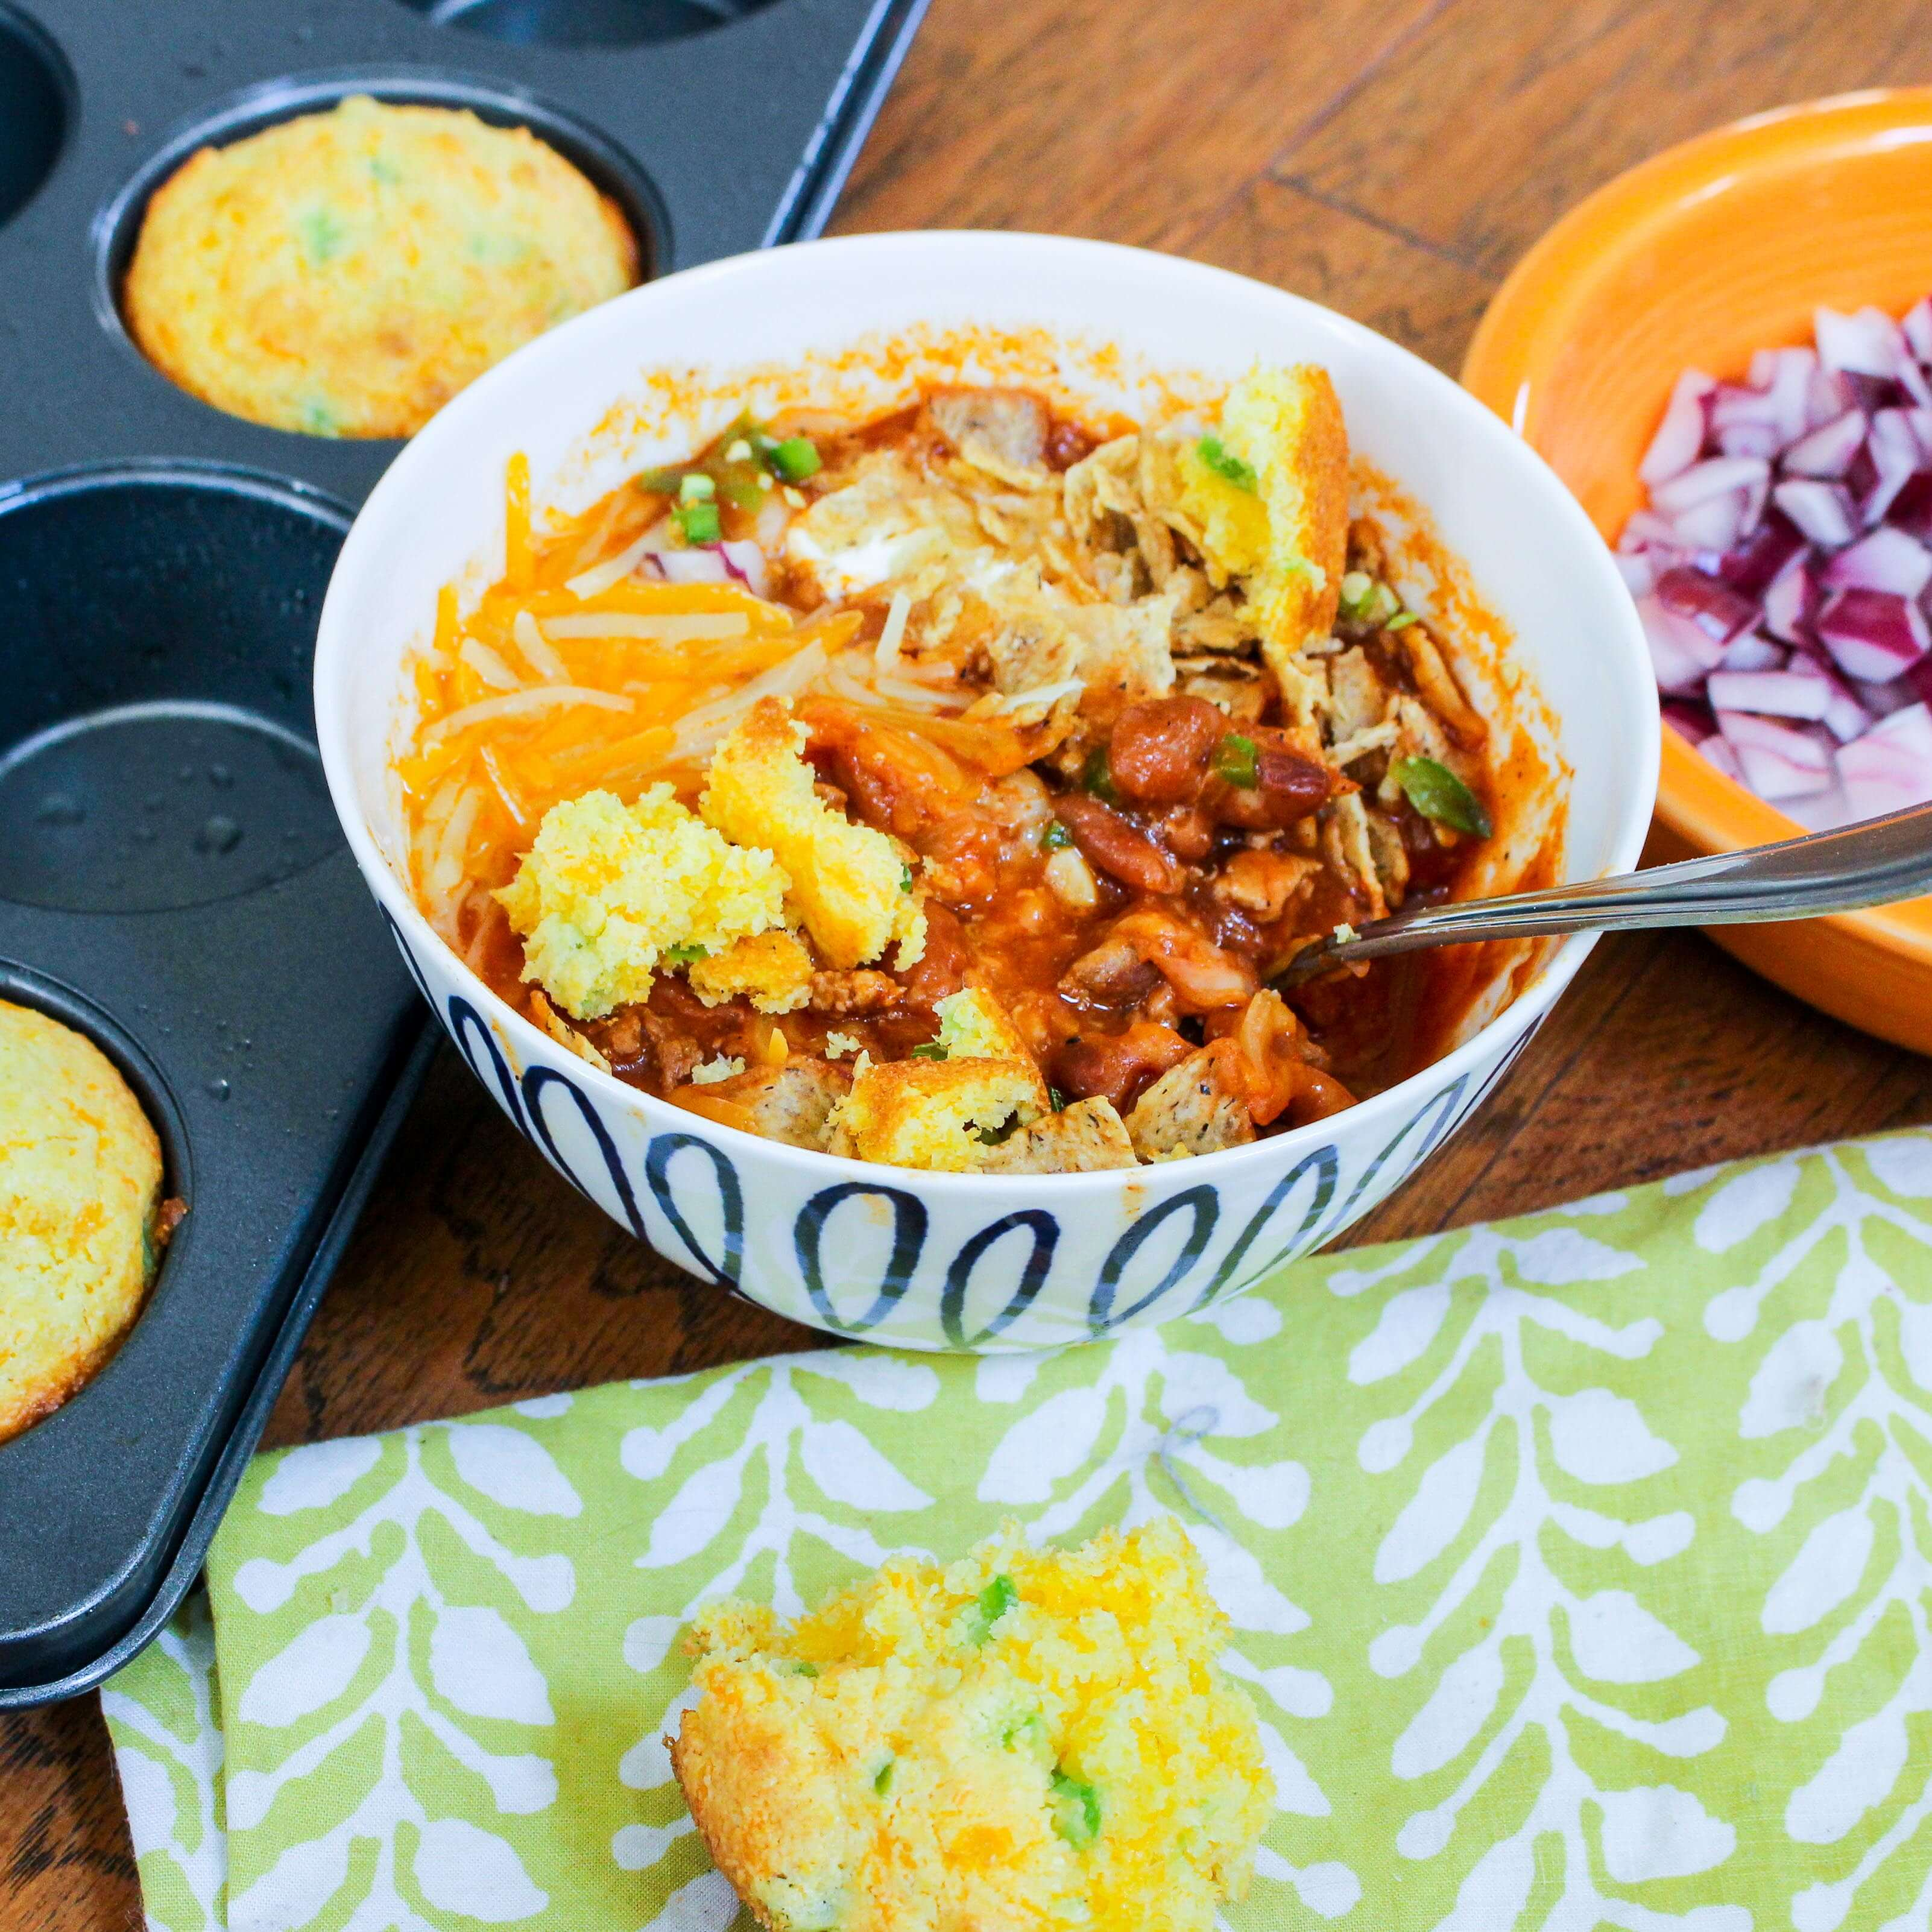 Beer Chili with Jalapeño Cheddar Cornbread Muffins